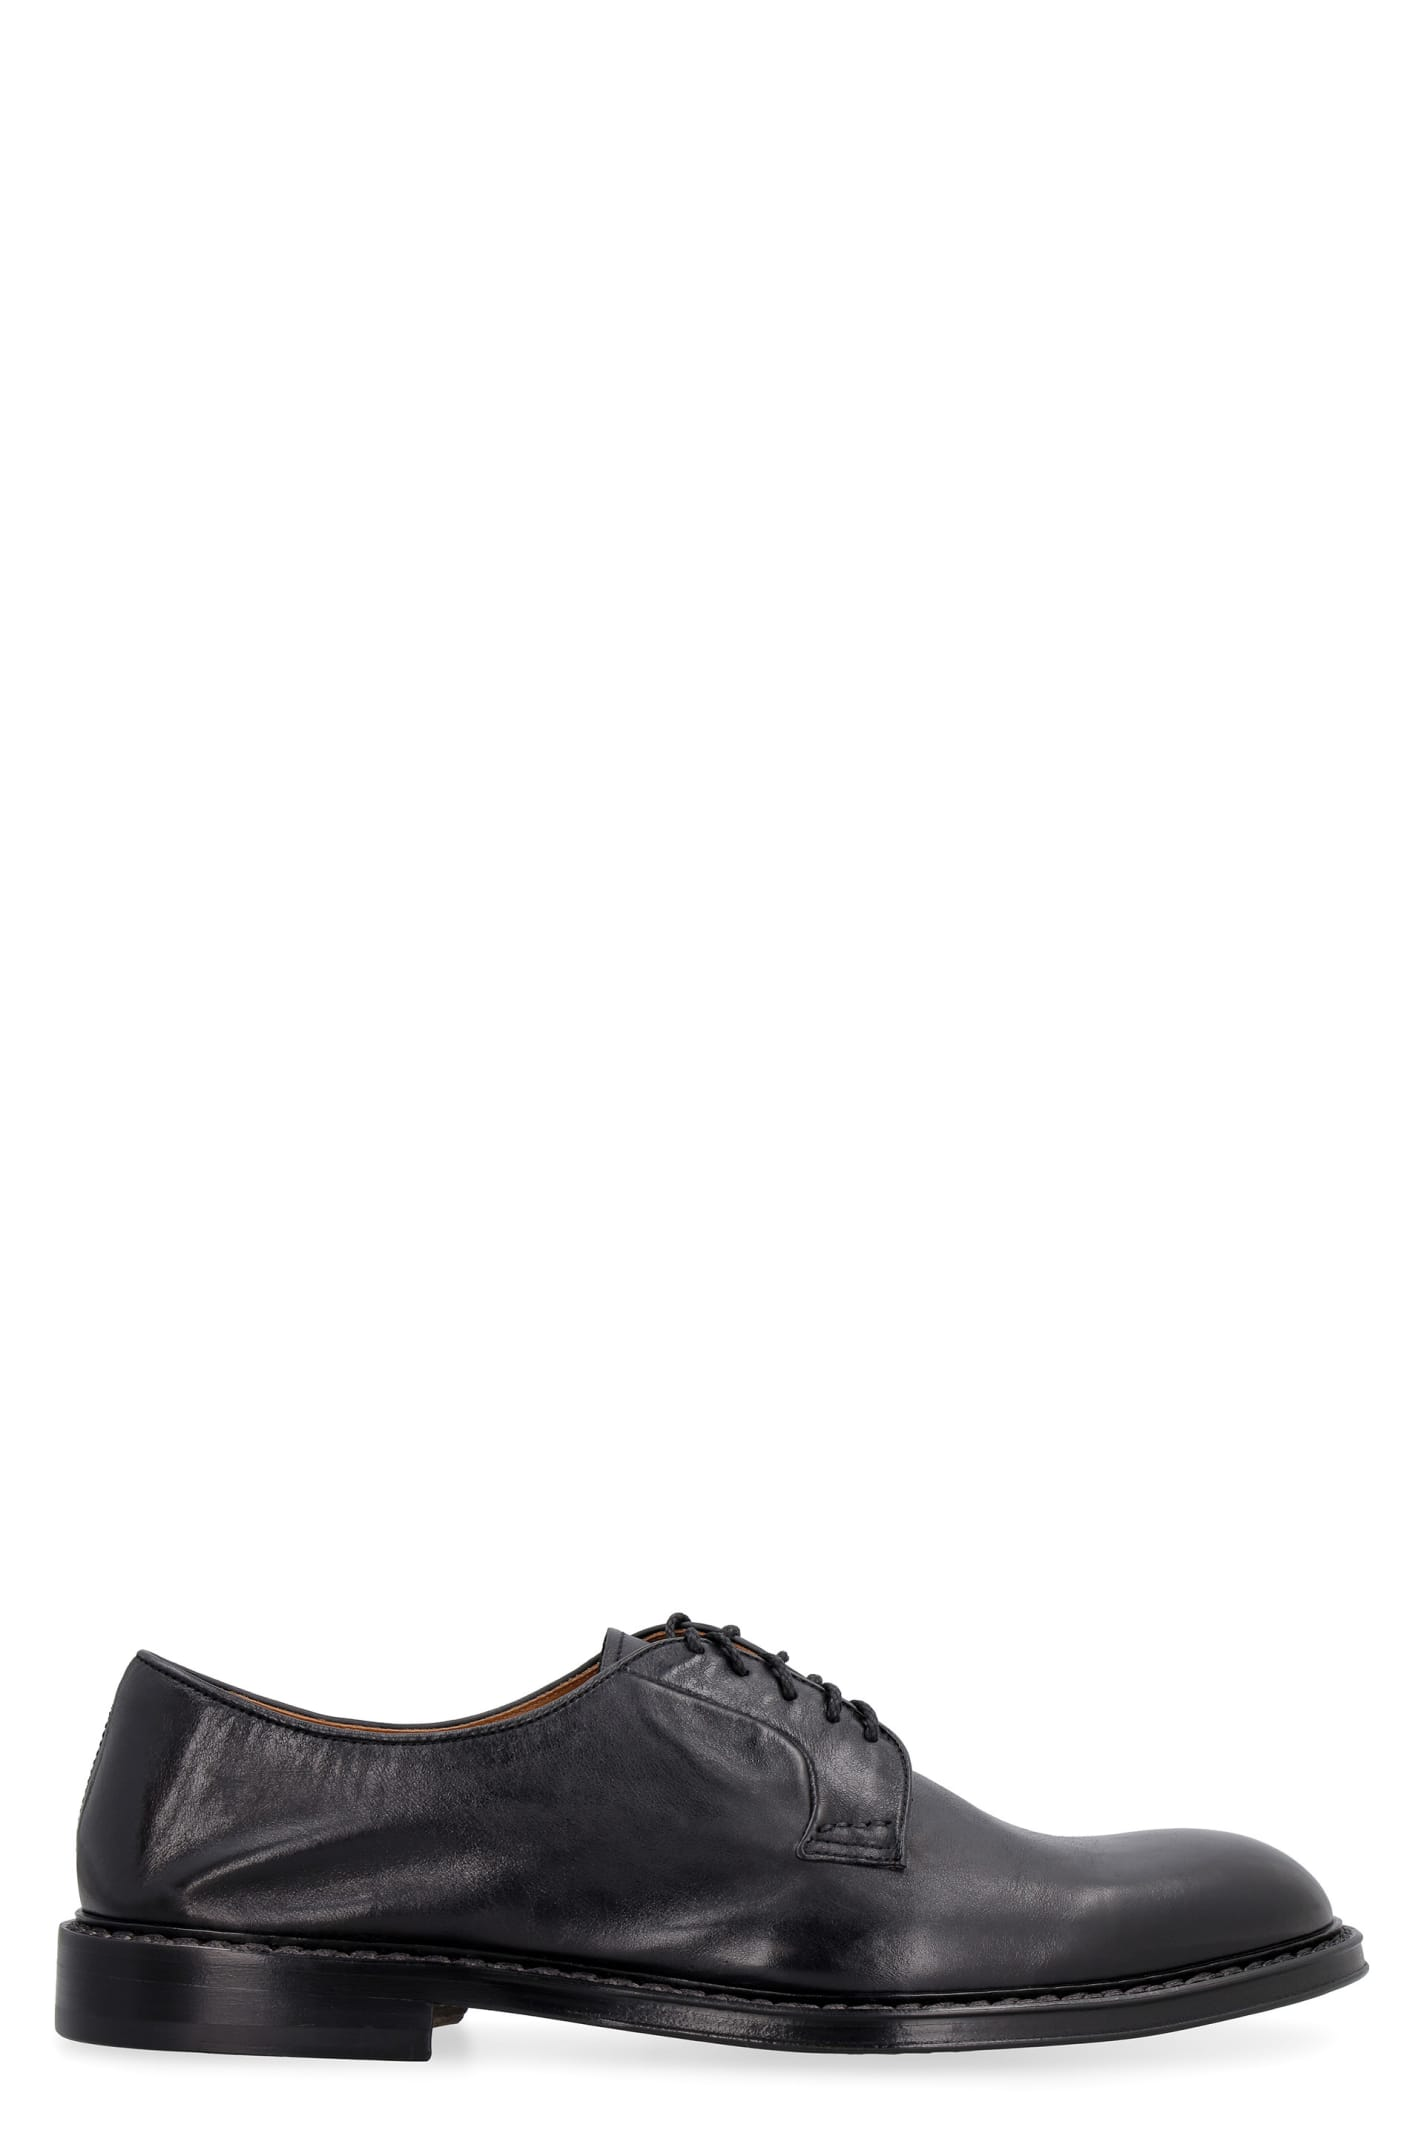 Doucals Leather Lace-up Derby Shoes